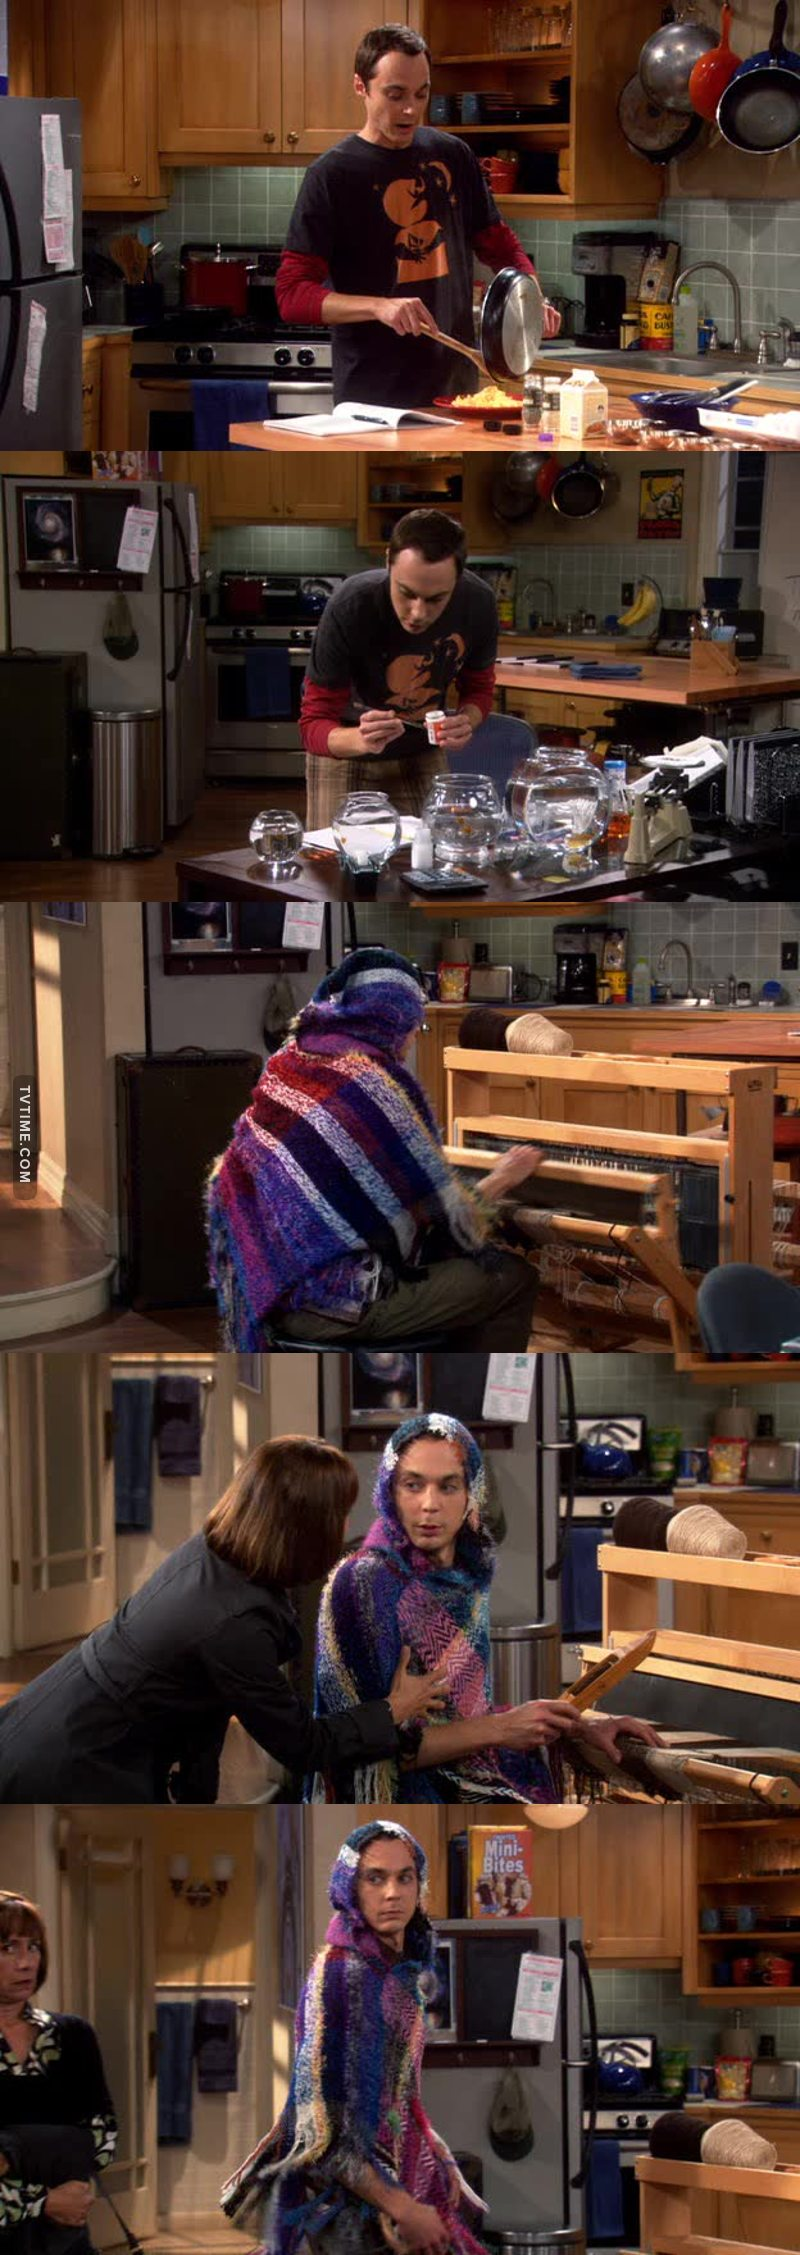 This is one of my favorite episode of the show. Sheldon is beyond funny. And Mary Cooper well she's perfect 😅